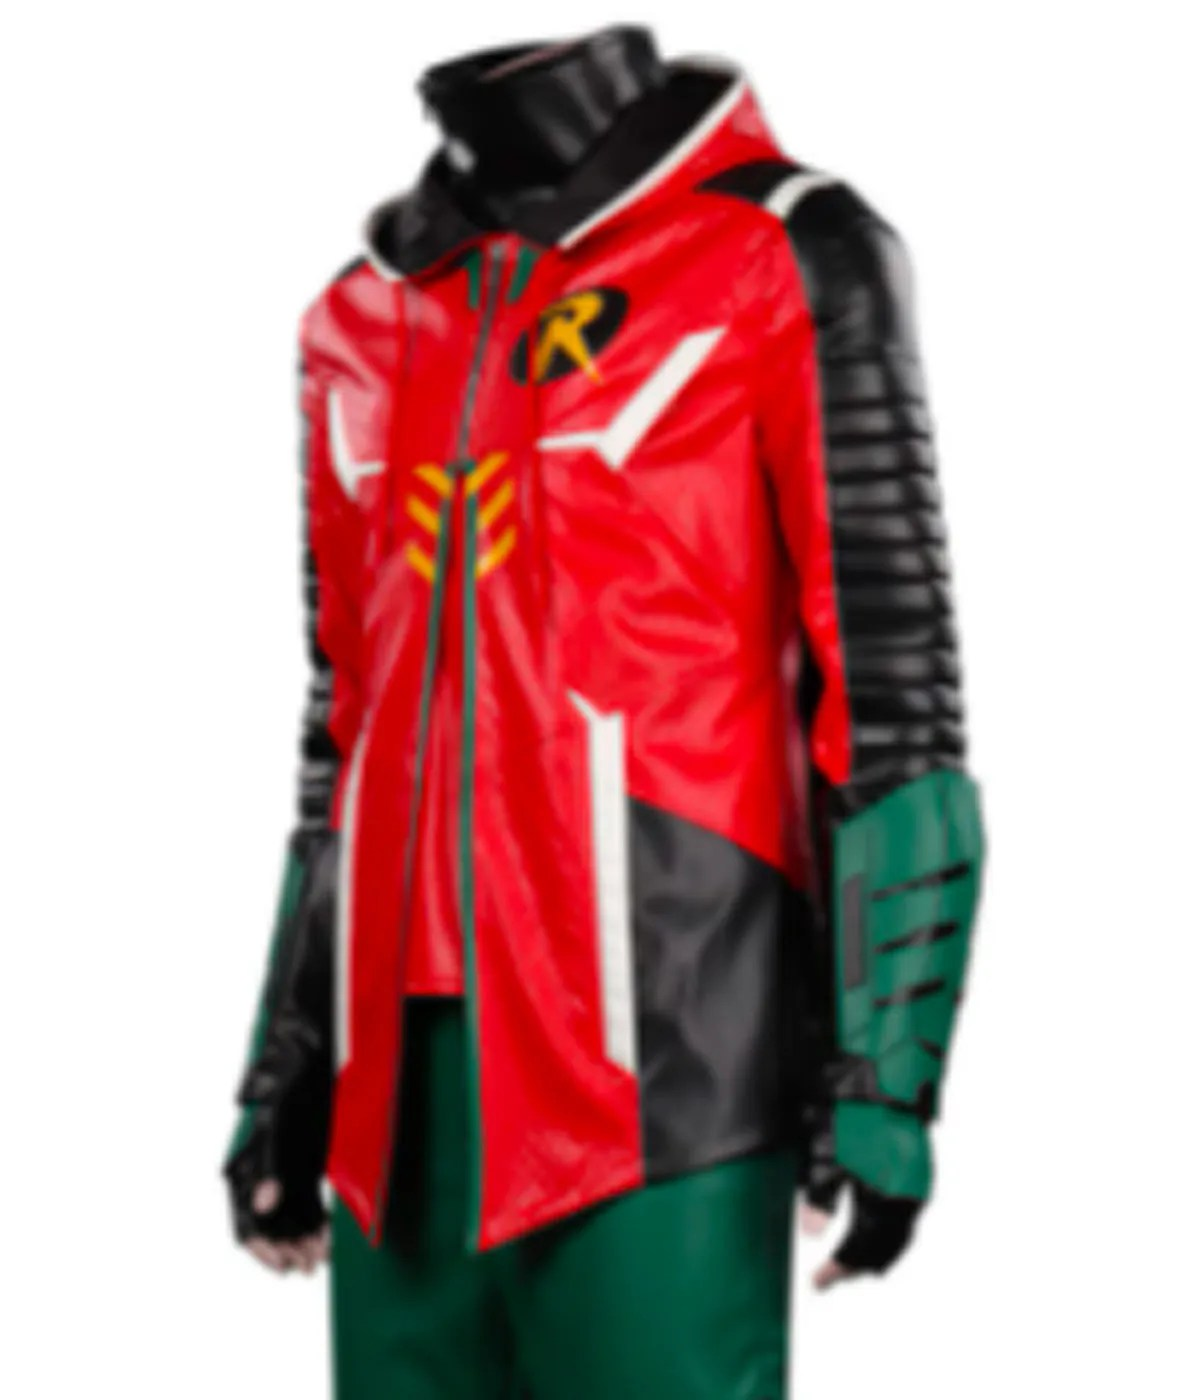 robin-gotham-knights-red-leather-jacket